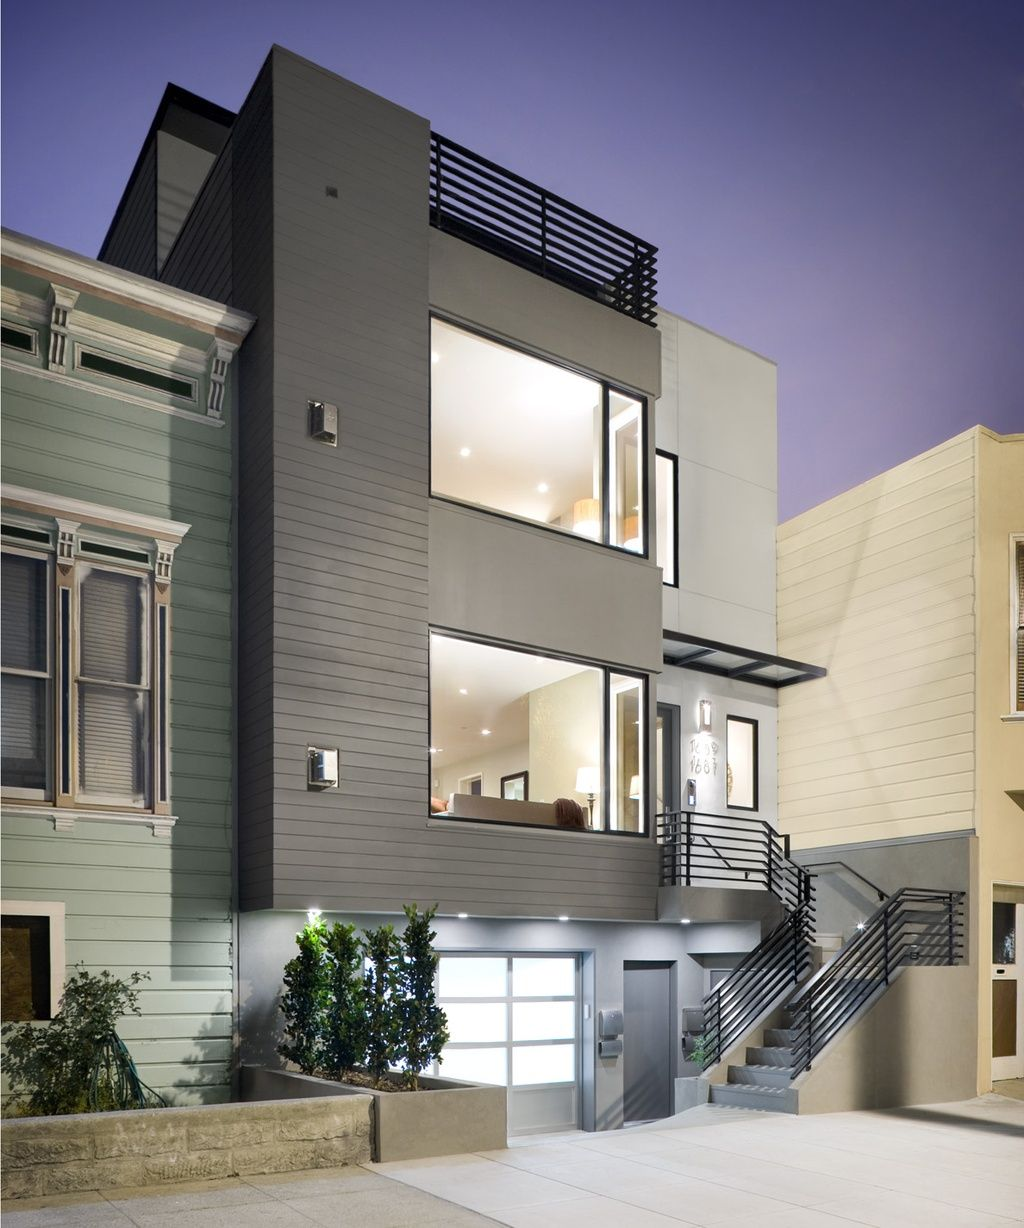 Exterior Home Design Software: Noe Valley Townhouses Residential